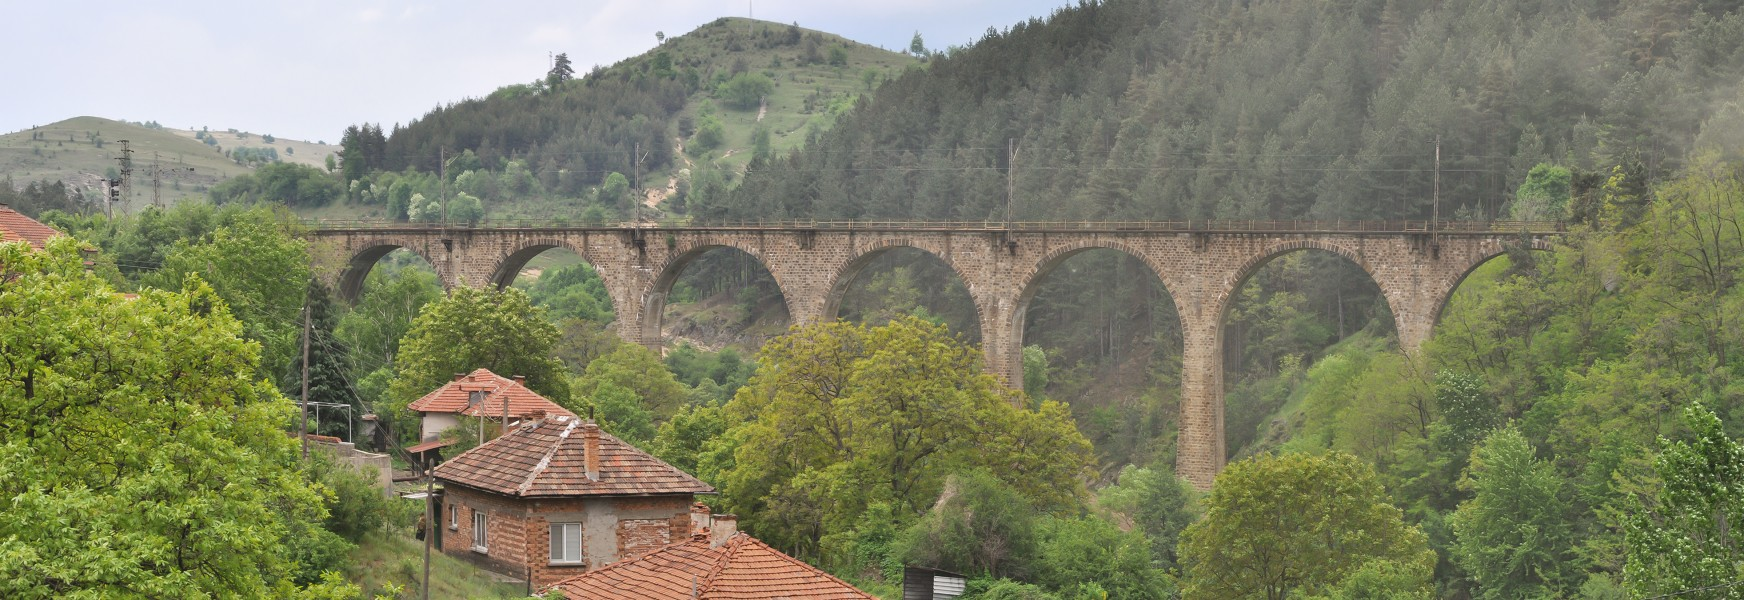 Klisura viaduct